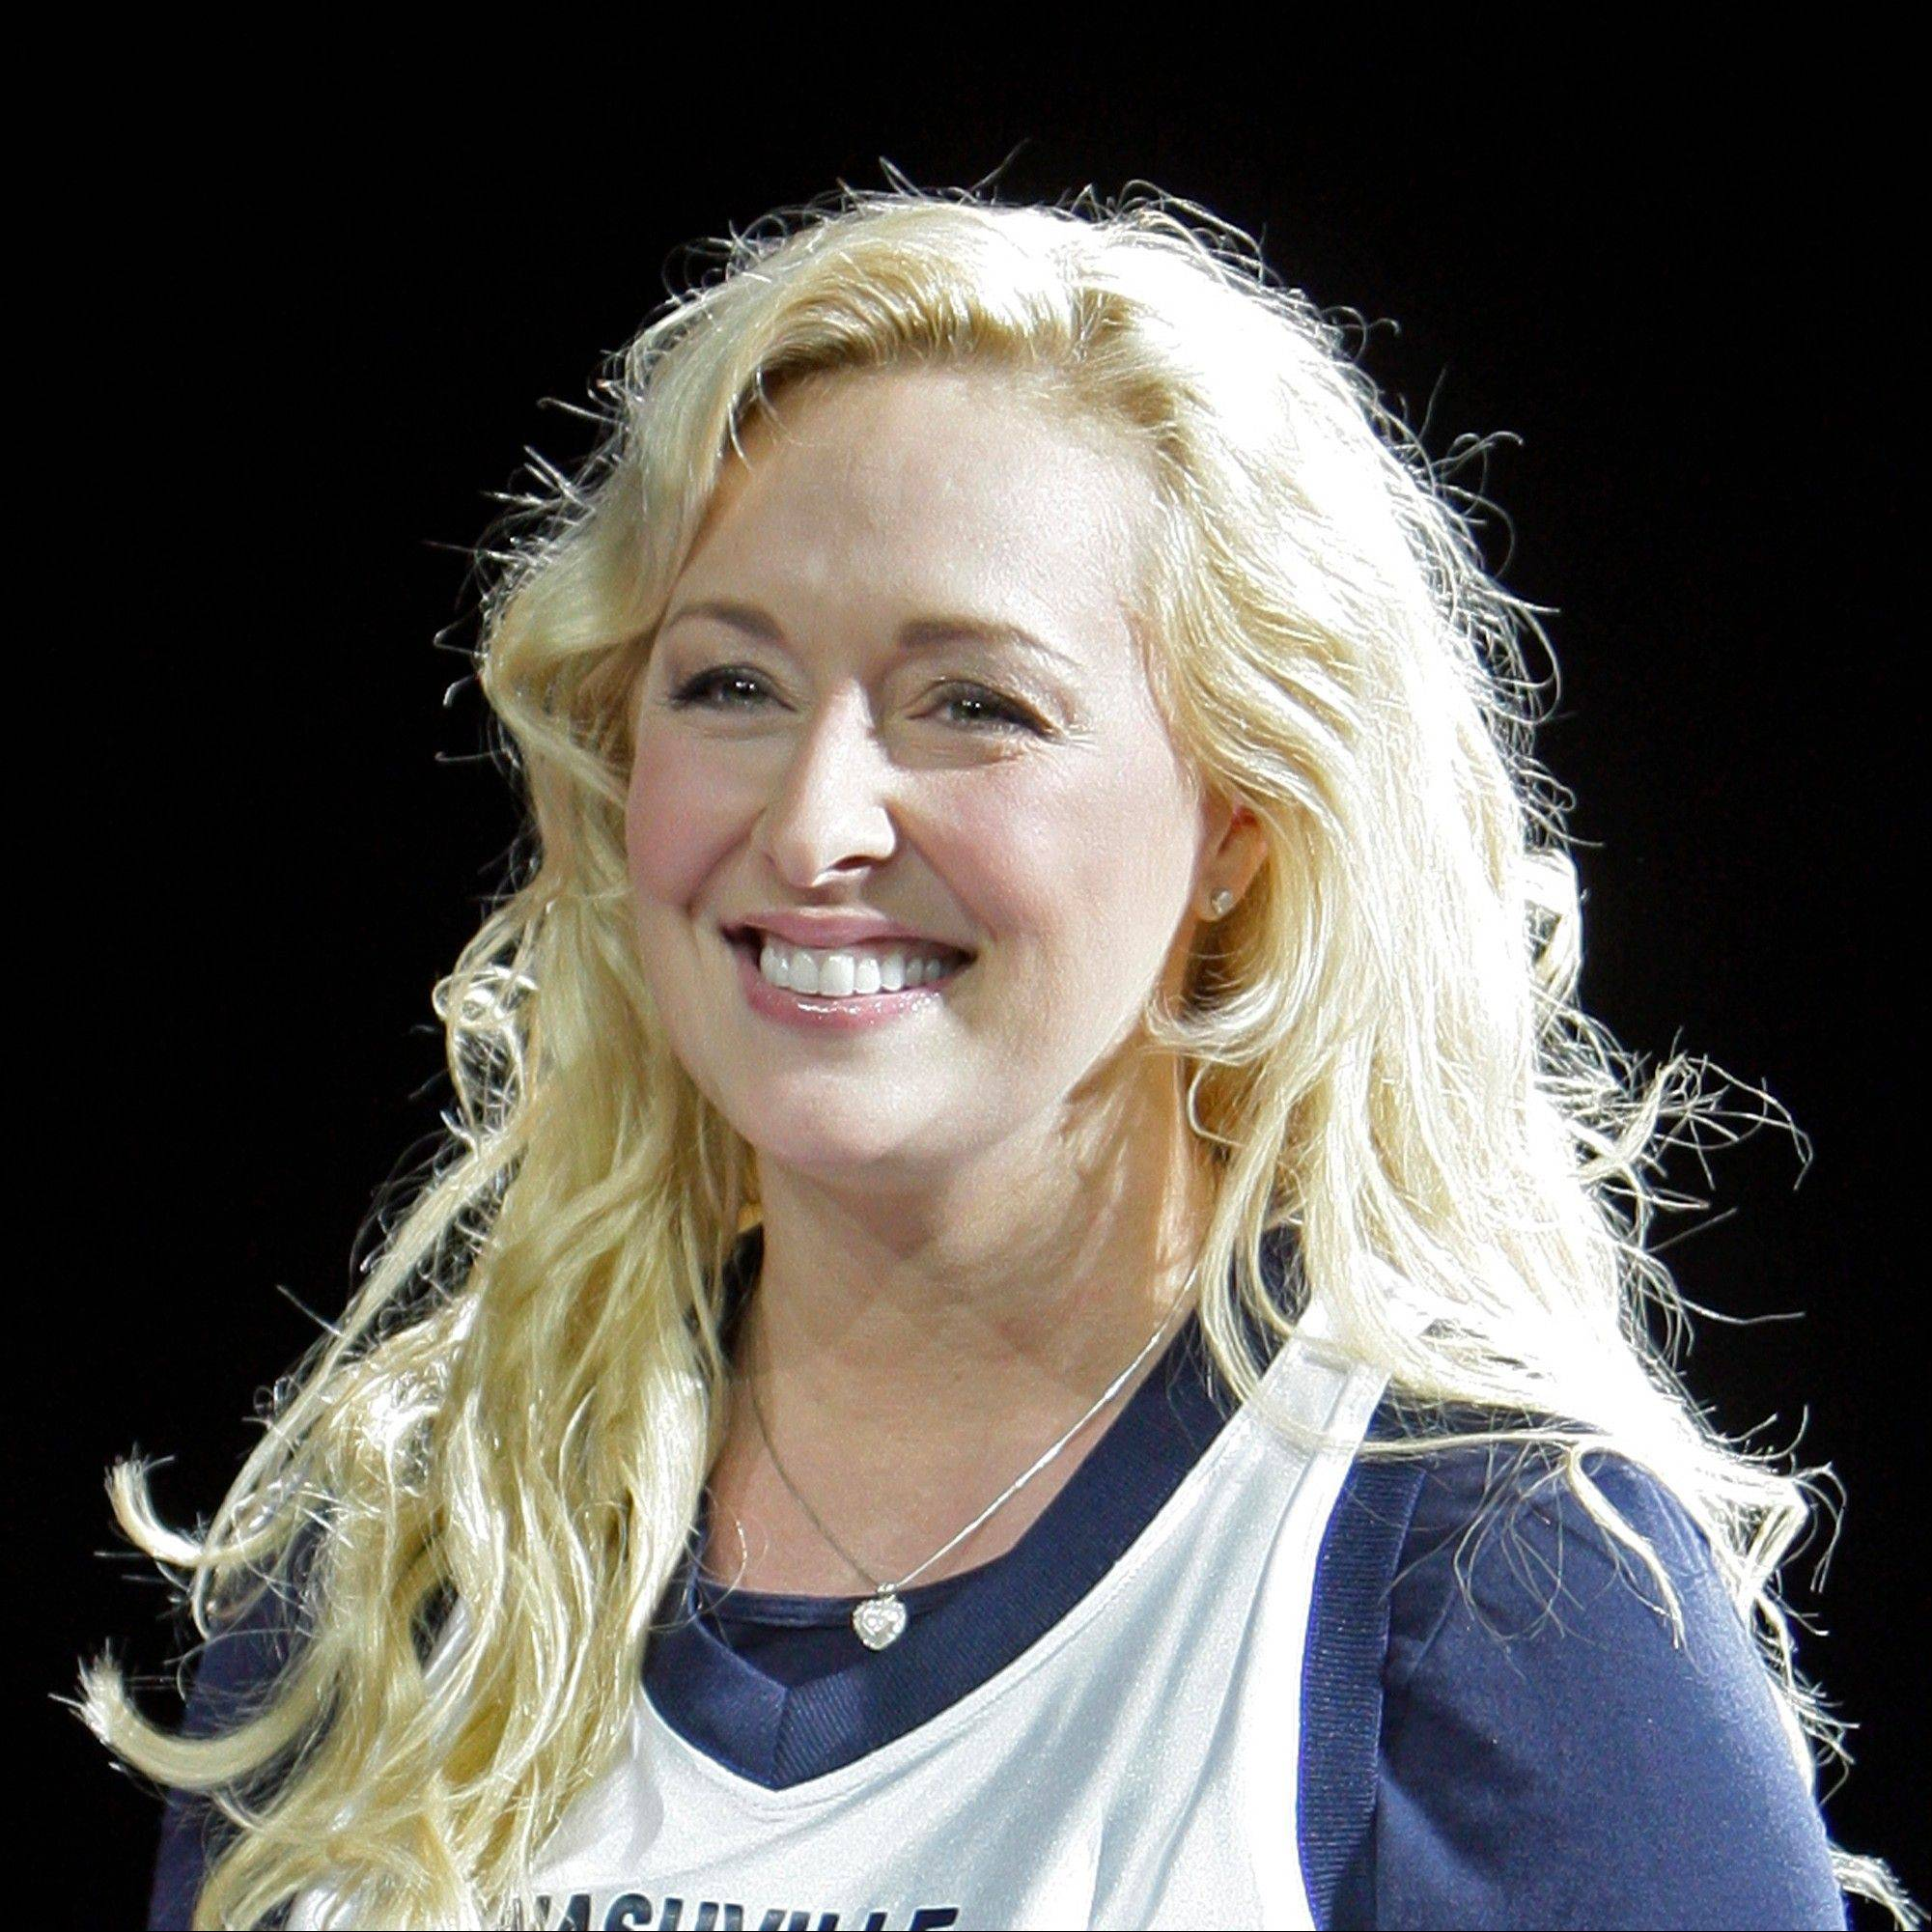 Country singer Mindy McCready, who hit the top of the country charts before personal problems sidetracked her career, died Sunday. She was 37.